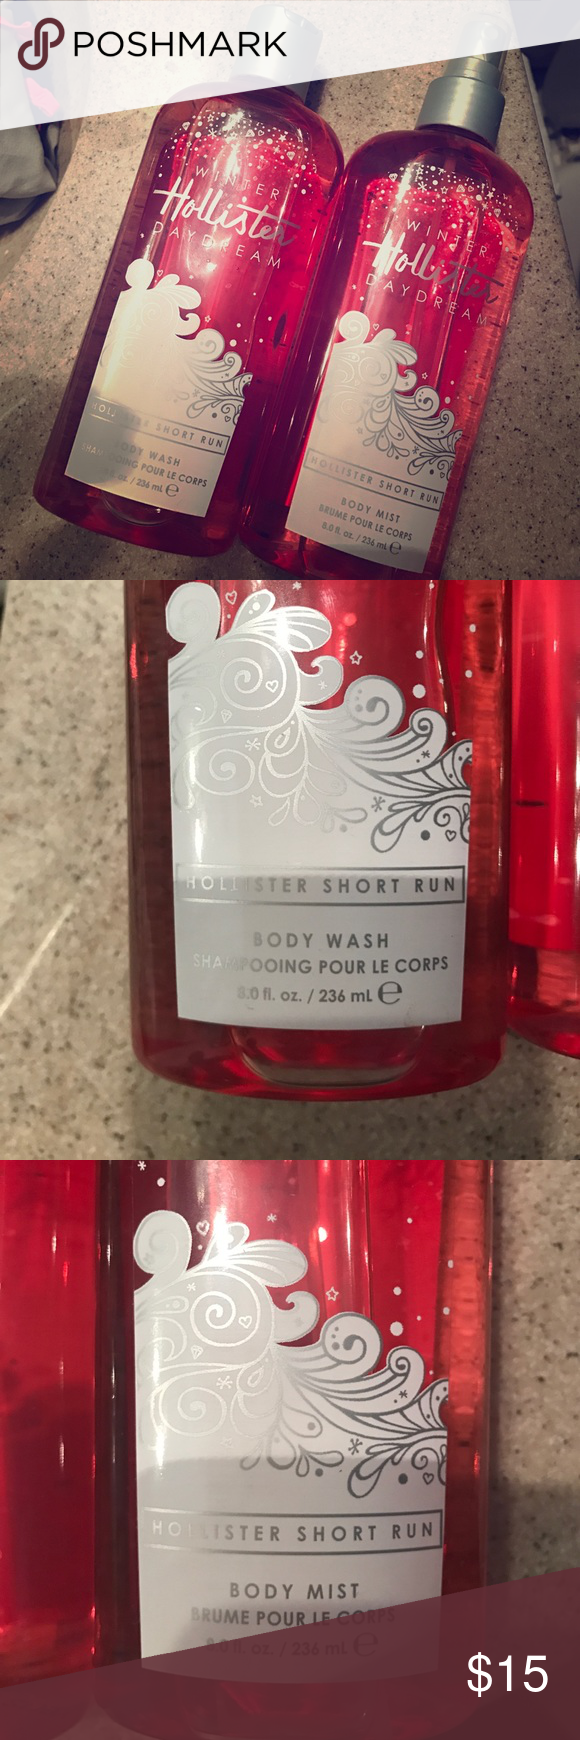 Never used before body wash and body mist! Brand new ! Without tags Hollister Other